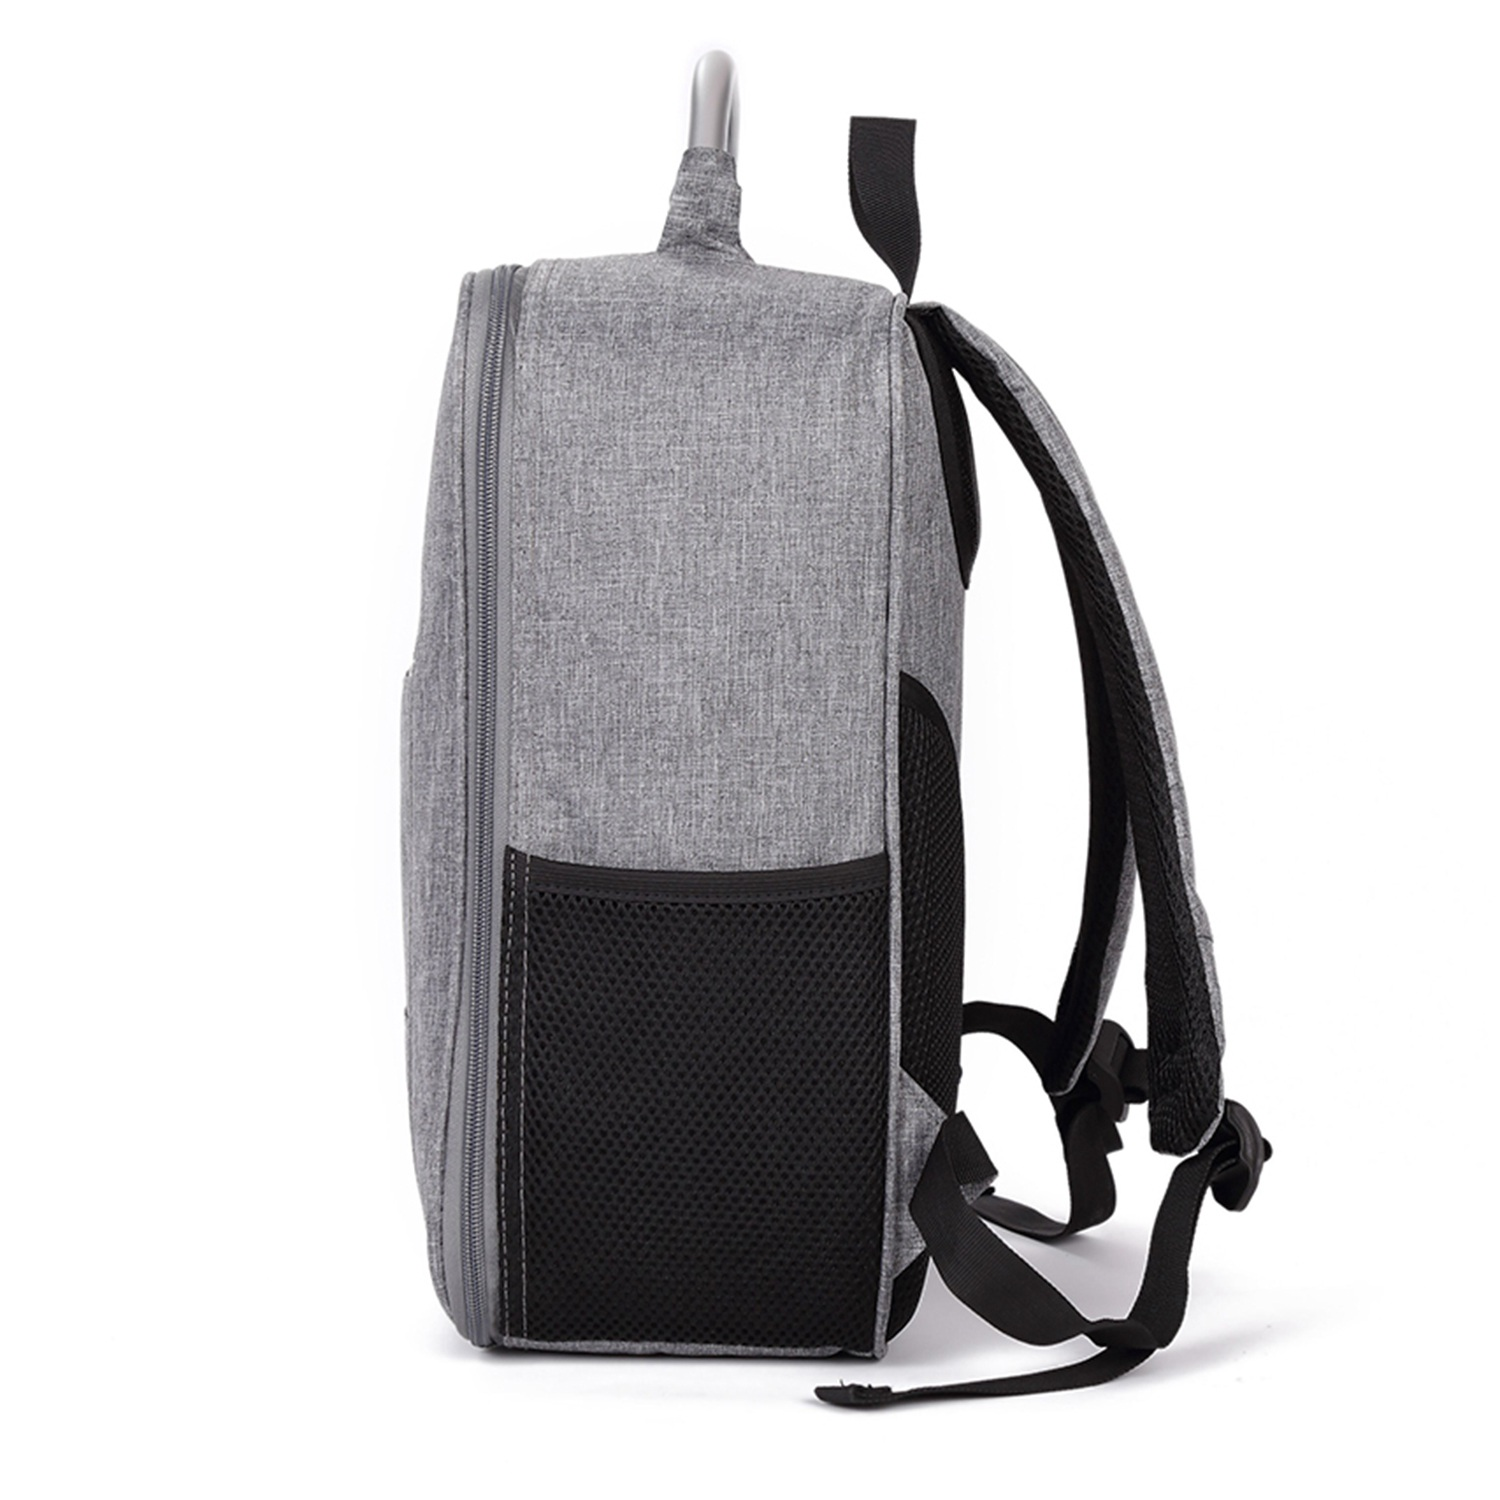 Durable Backpack Handbag Portable Travel Suitcase Shockproof Storage Bag Carrying Box For Xiaomi A3 Camera Drone Accessories